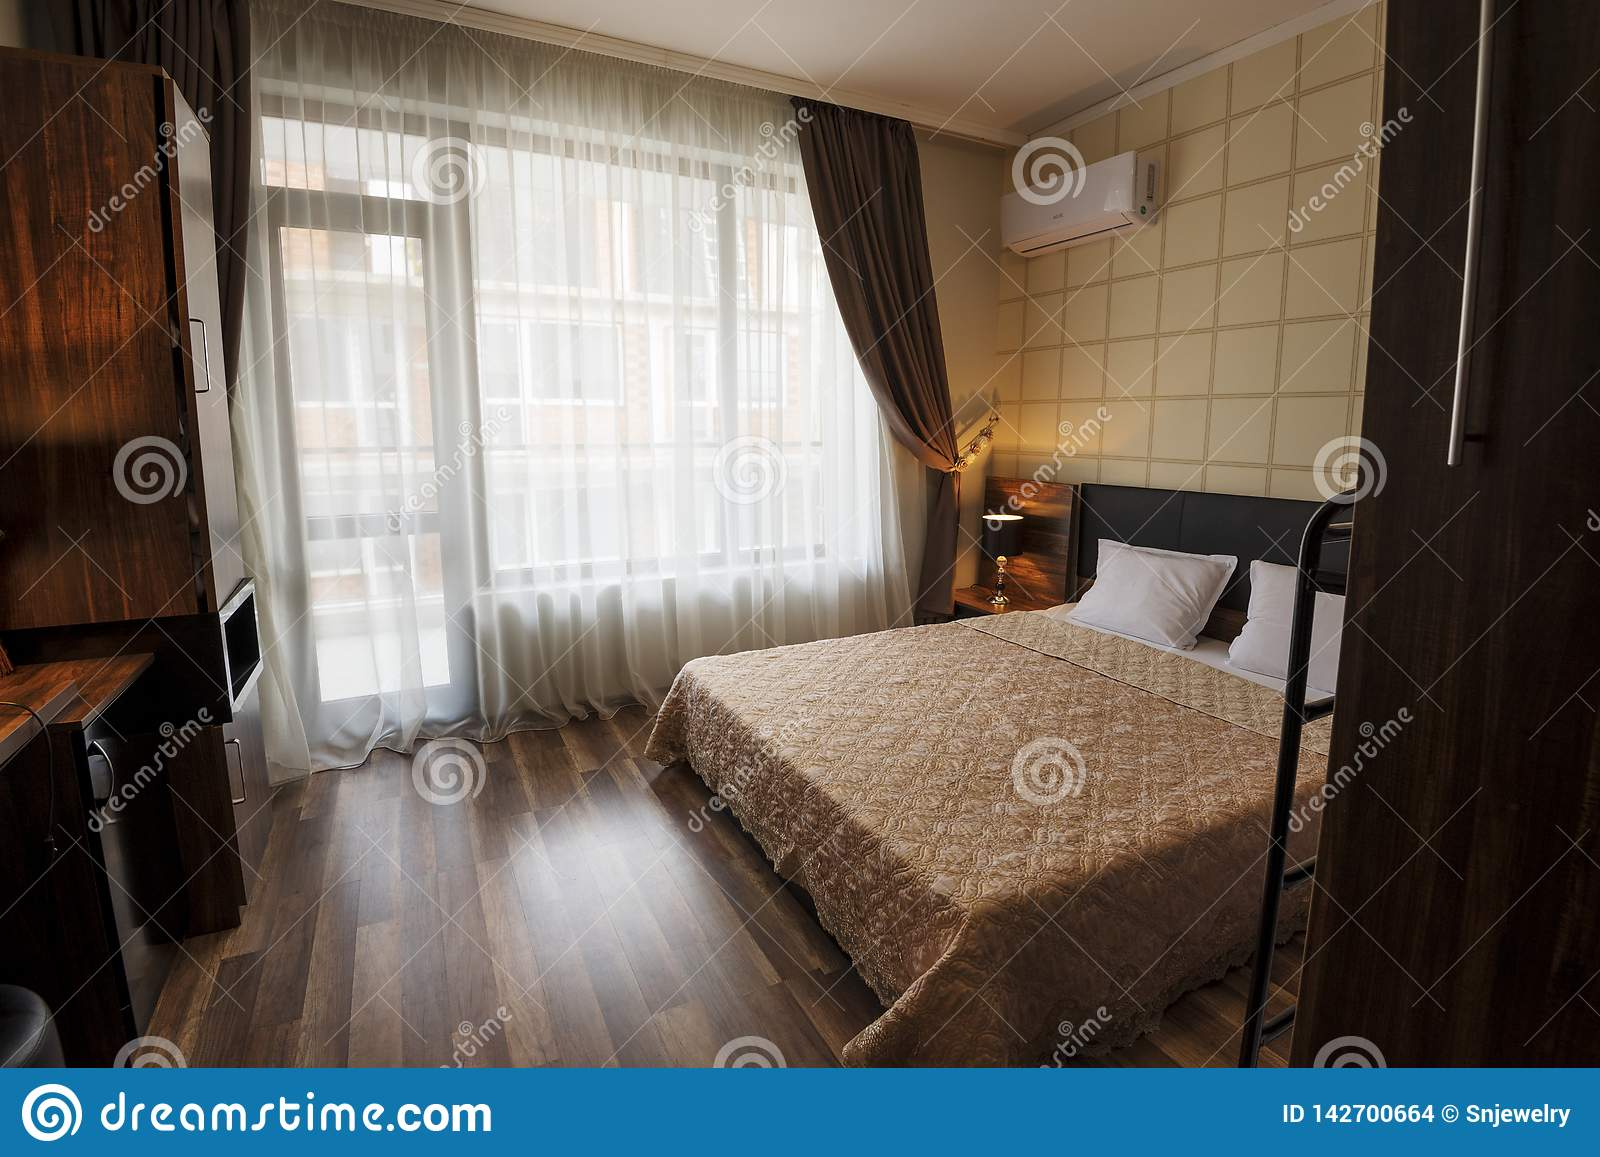 Classy Bedroom Interior Design Large Bed Room With Brown Color Tone Furniture Windows With Long Curtains Drapery And Sheers Stock Photo Image Of Classilassy Drapery 142700664